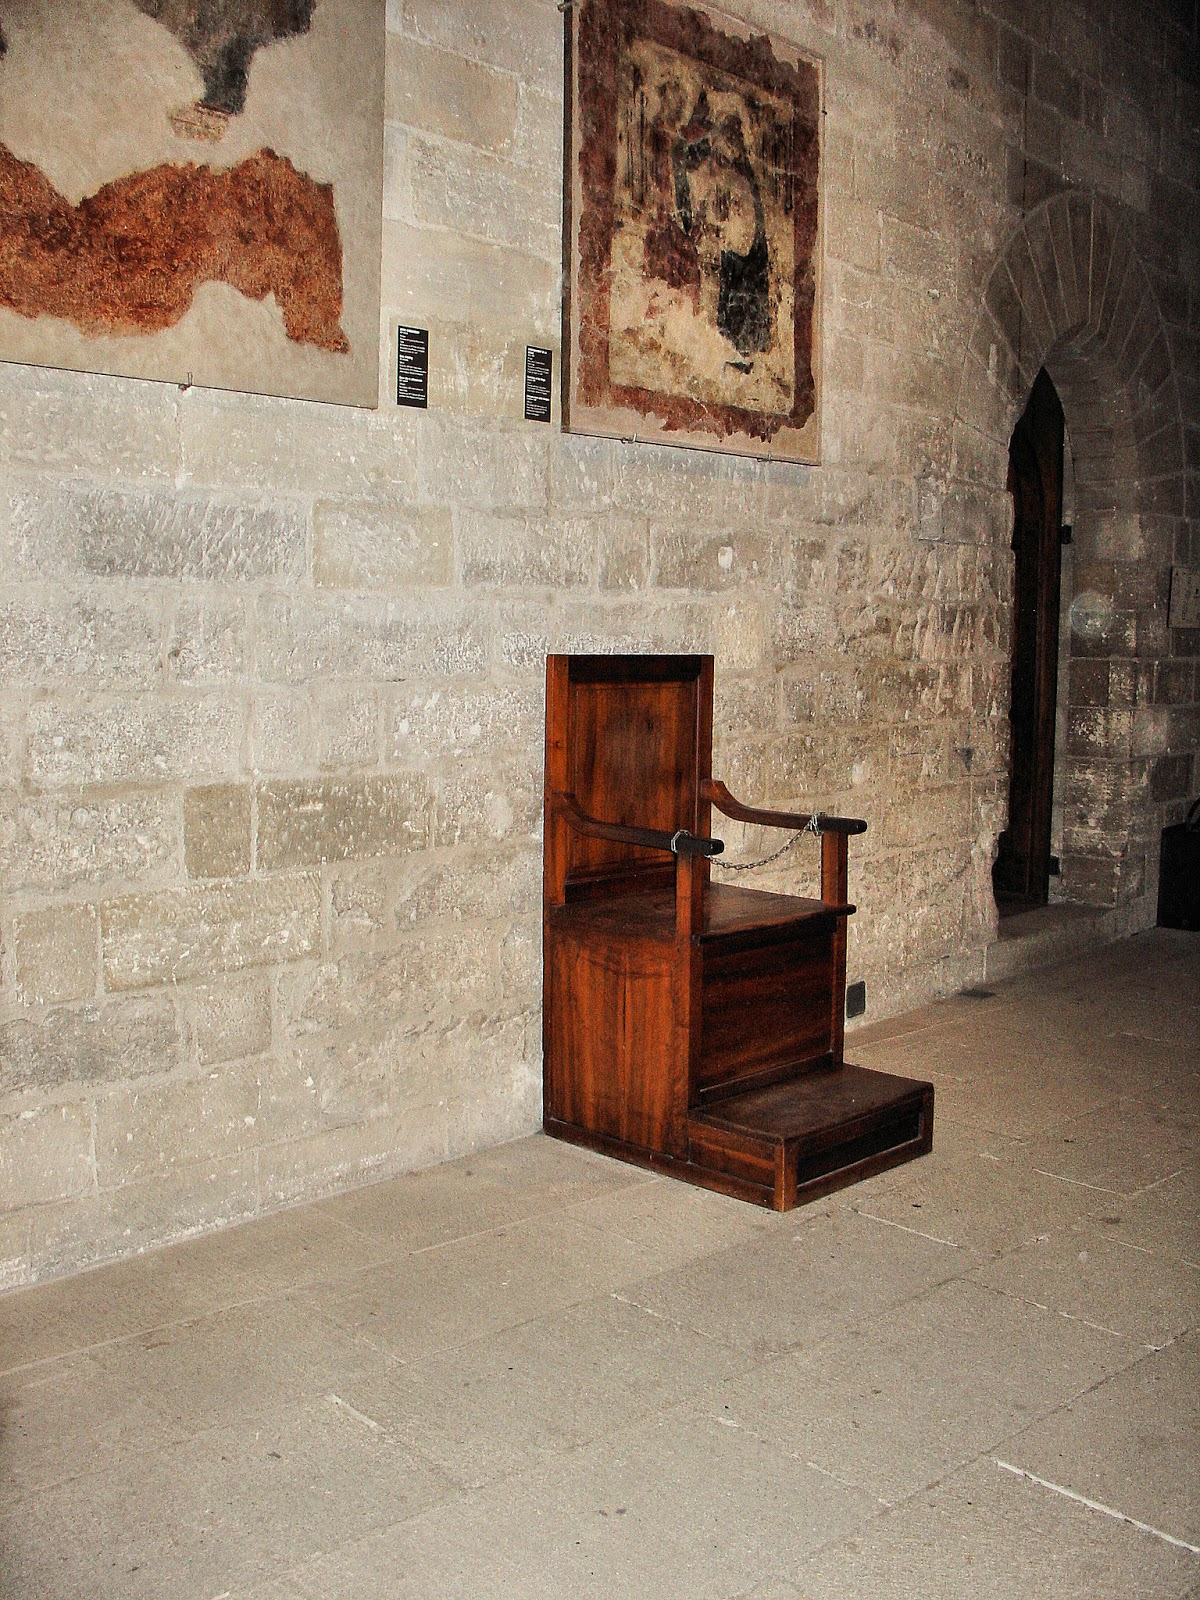 The Papal Seat inside the Consistory Hall.